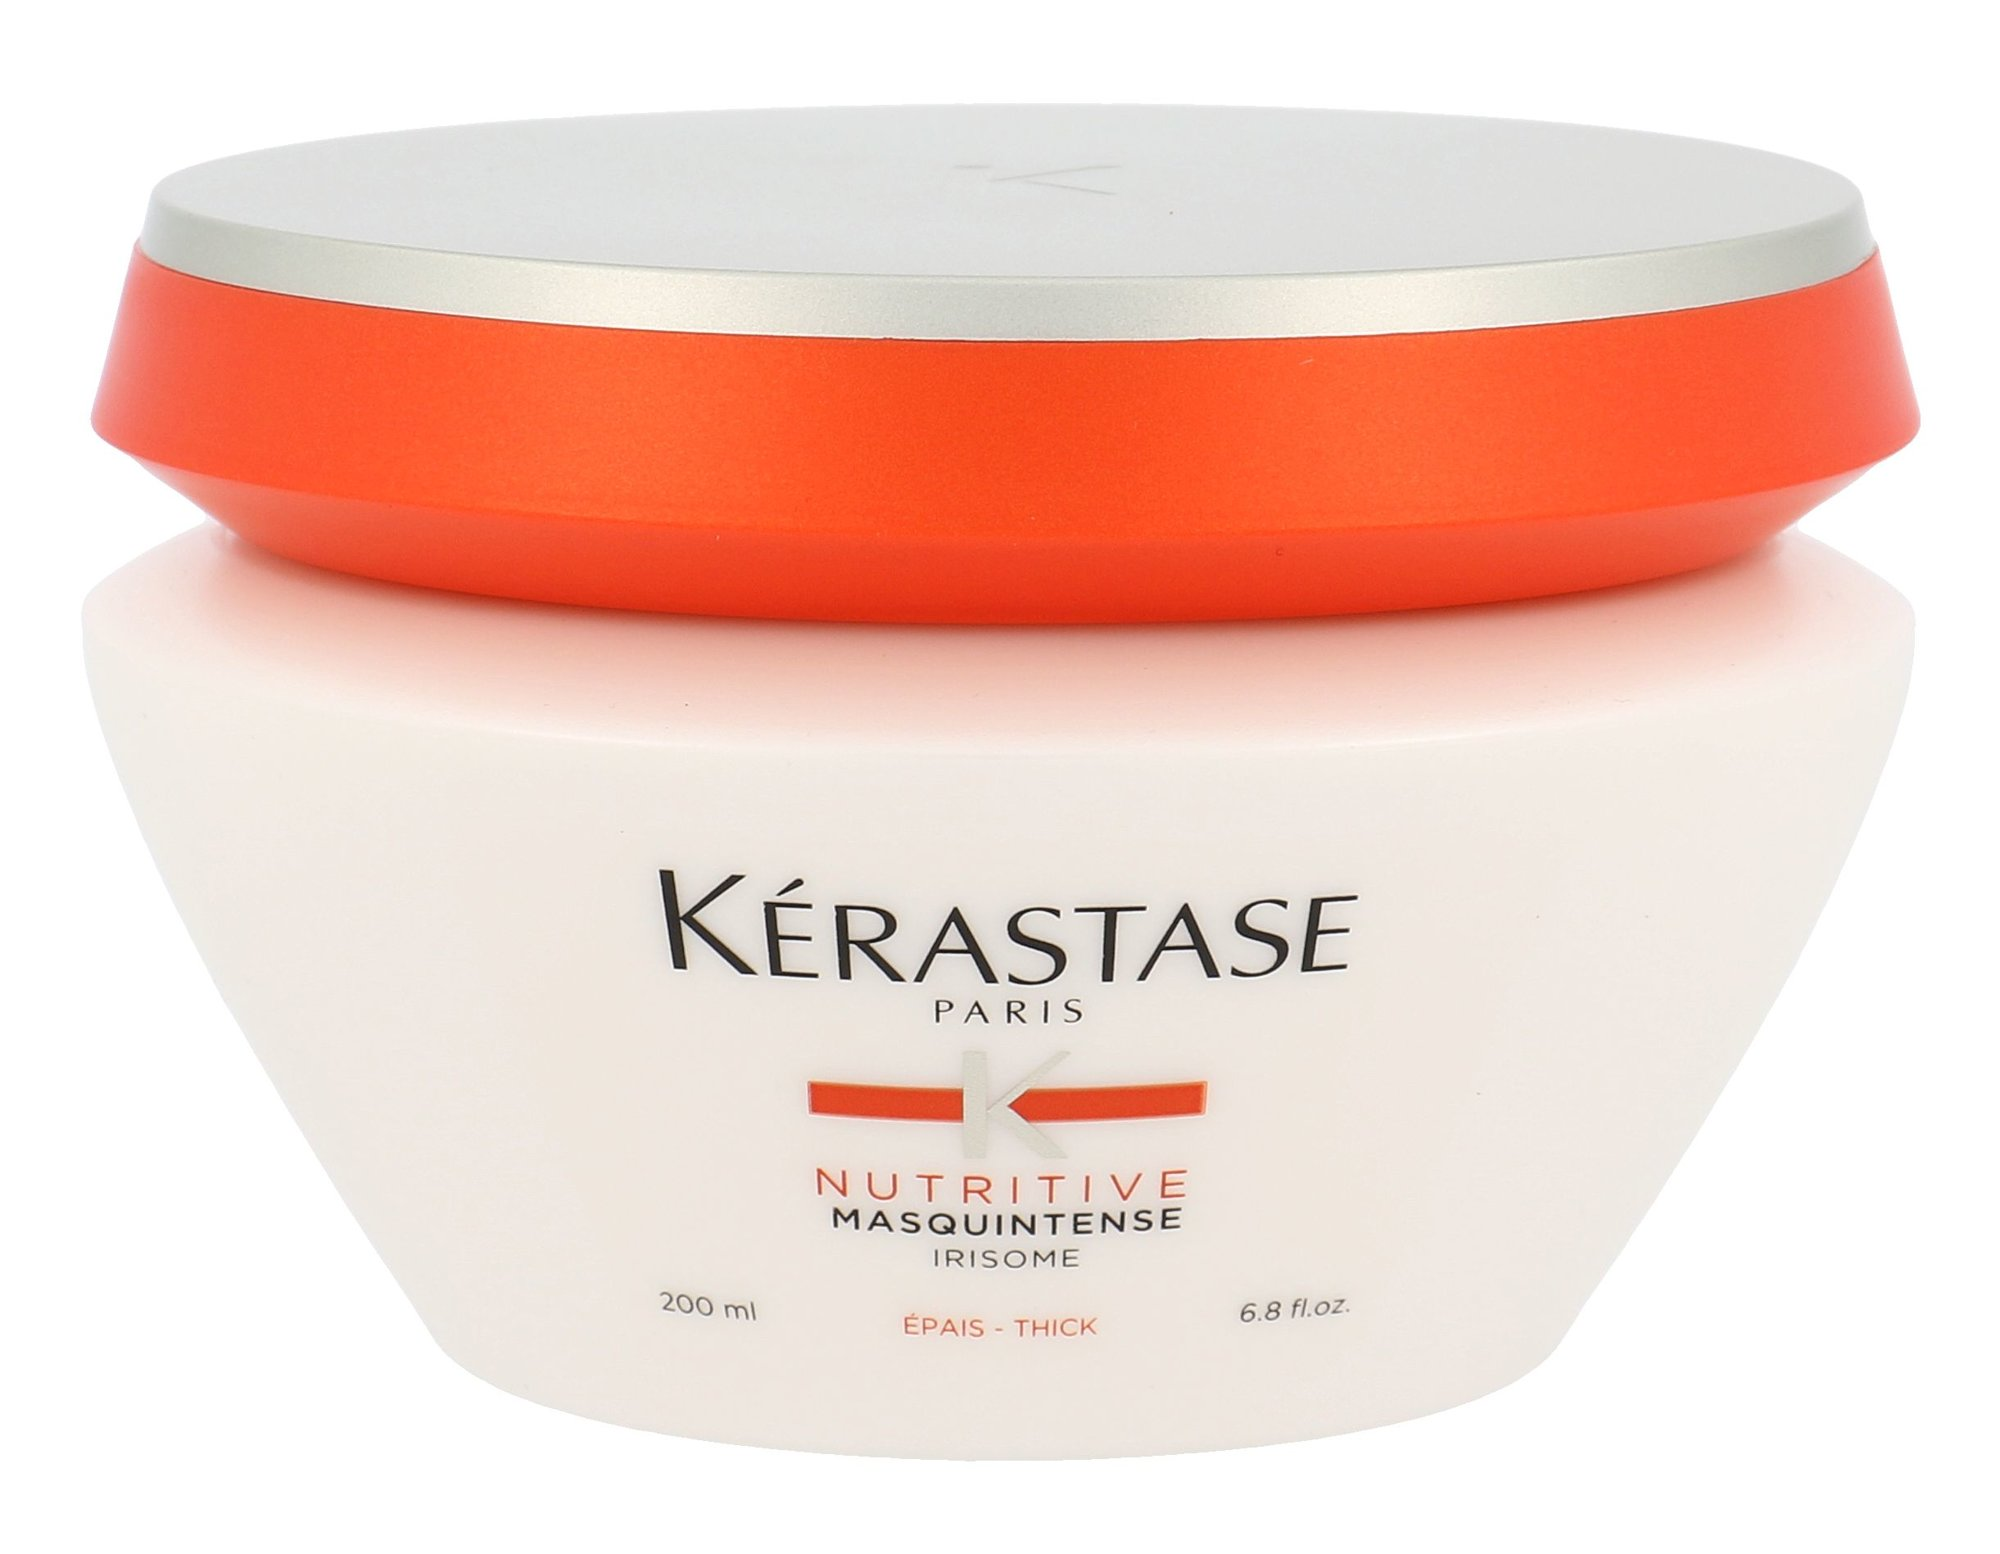 Kérastase Nutritive Cosmetic 200ml